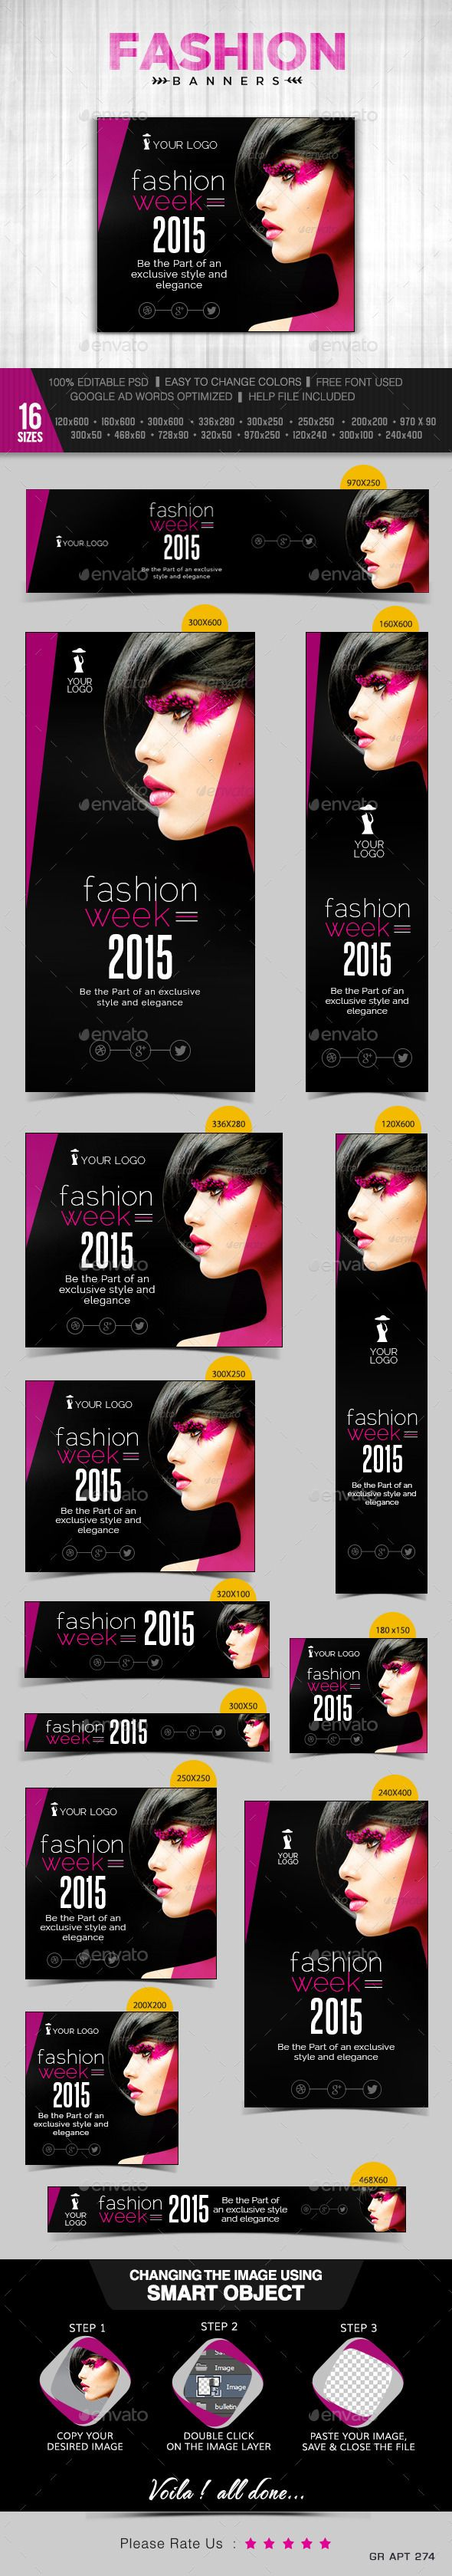 Fashion Banners Template PSD | Buy and Download: http://graphicriver.net/item/fashion-banners/9982691?ref=ksioks